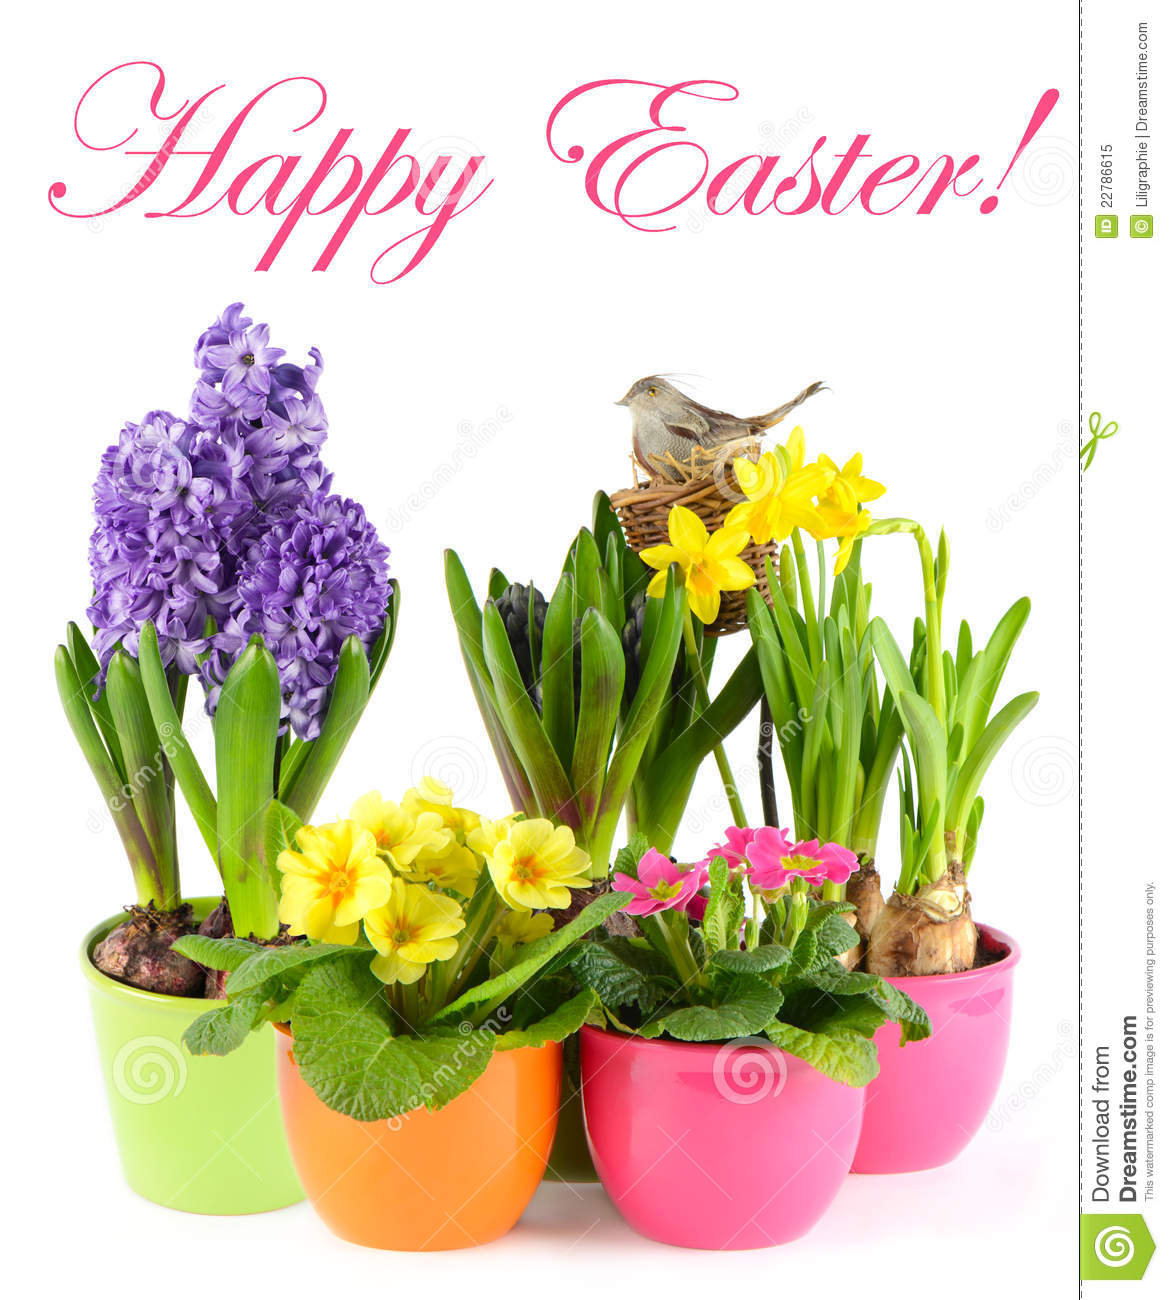 Free images spring flowers image stock Fresh Spring Flowers With Birds Nest. Easter Royalty Free Stock ... image stock